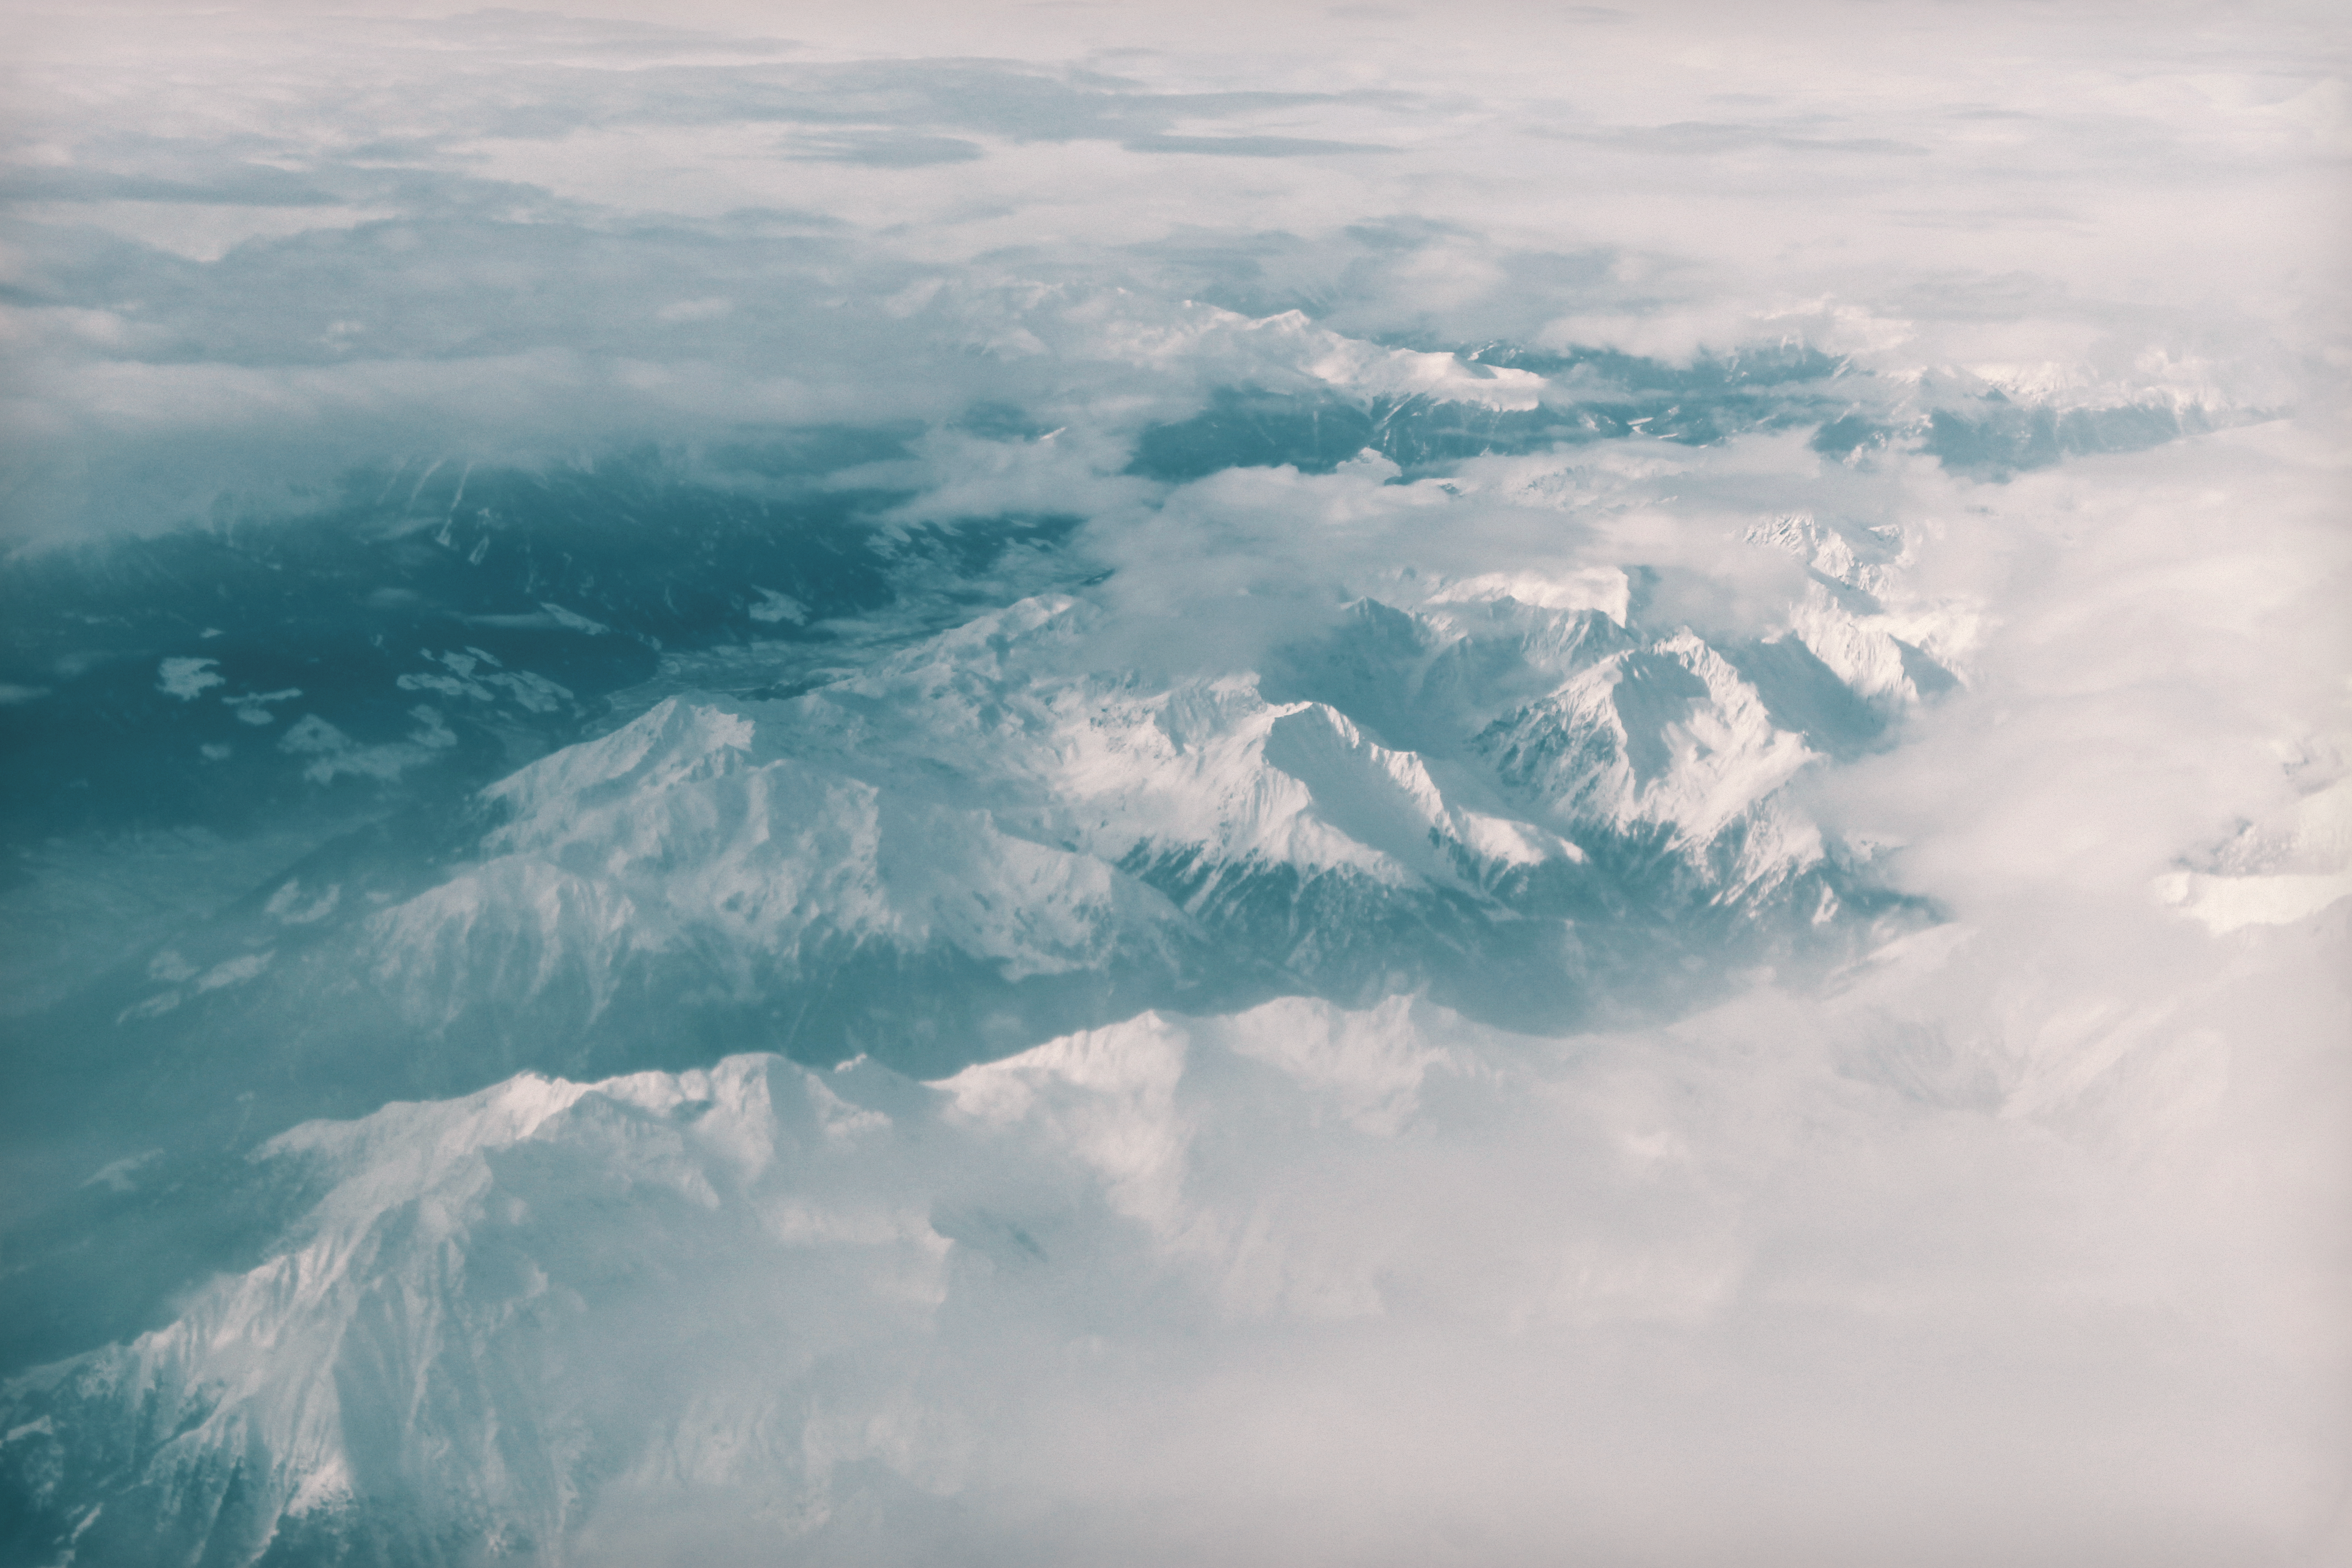 A drone view of the Swiss Alps' snow covered mountains surrounded by fog.